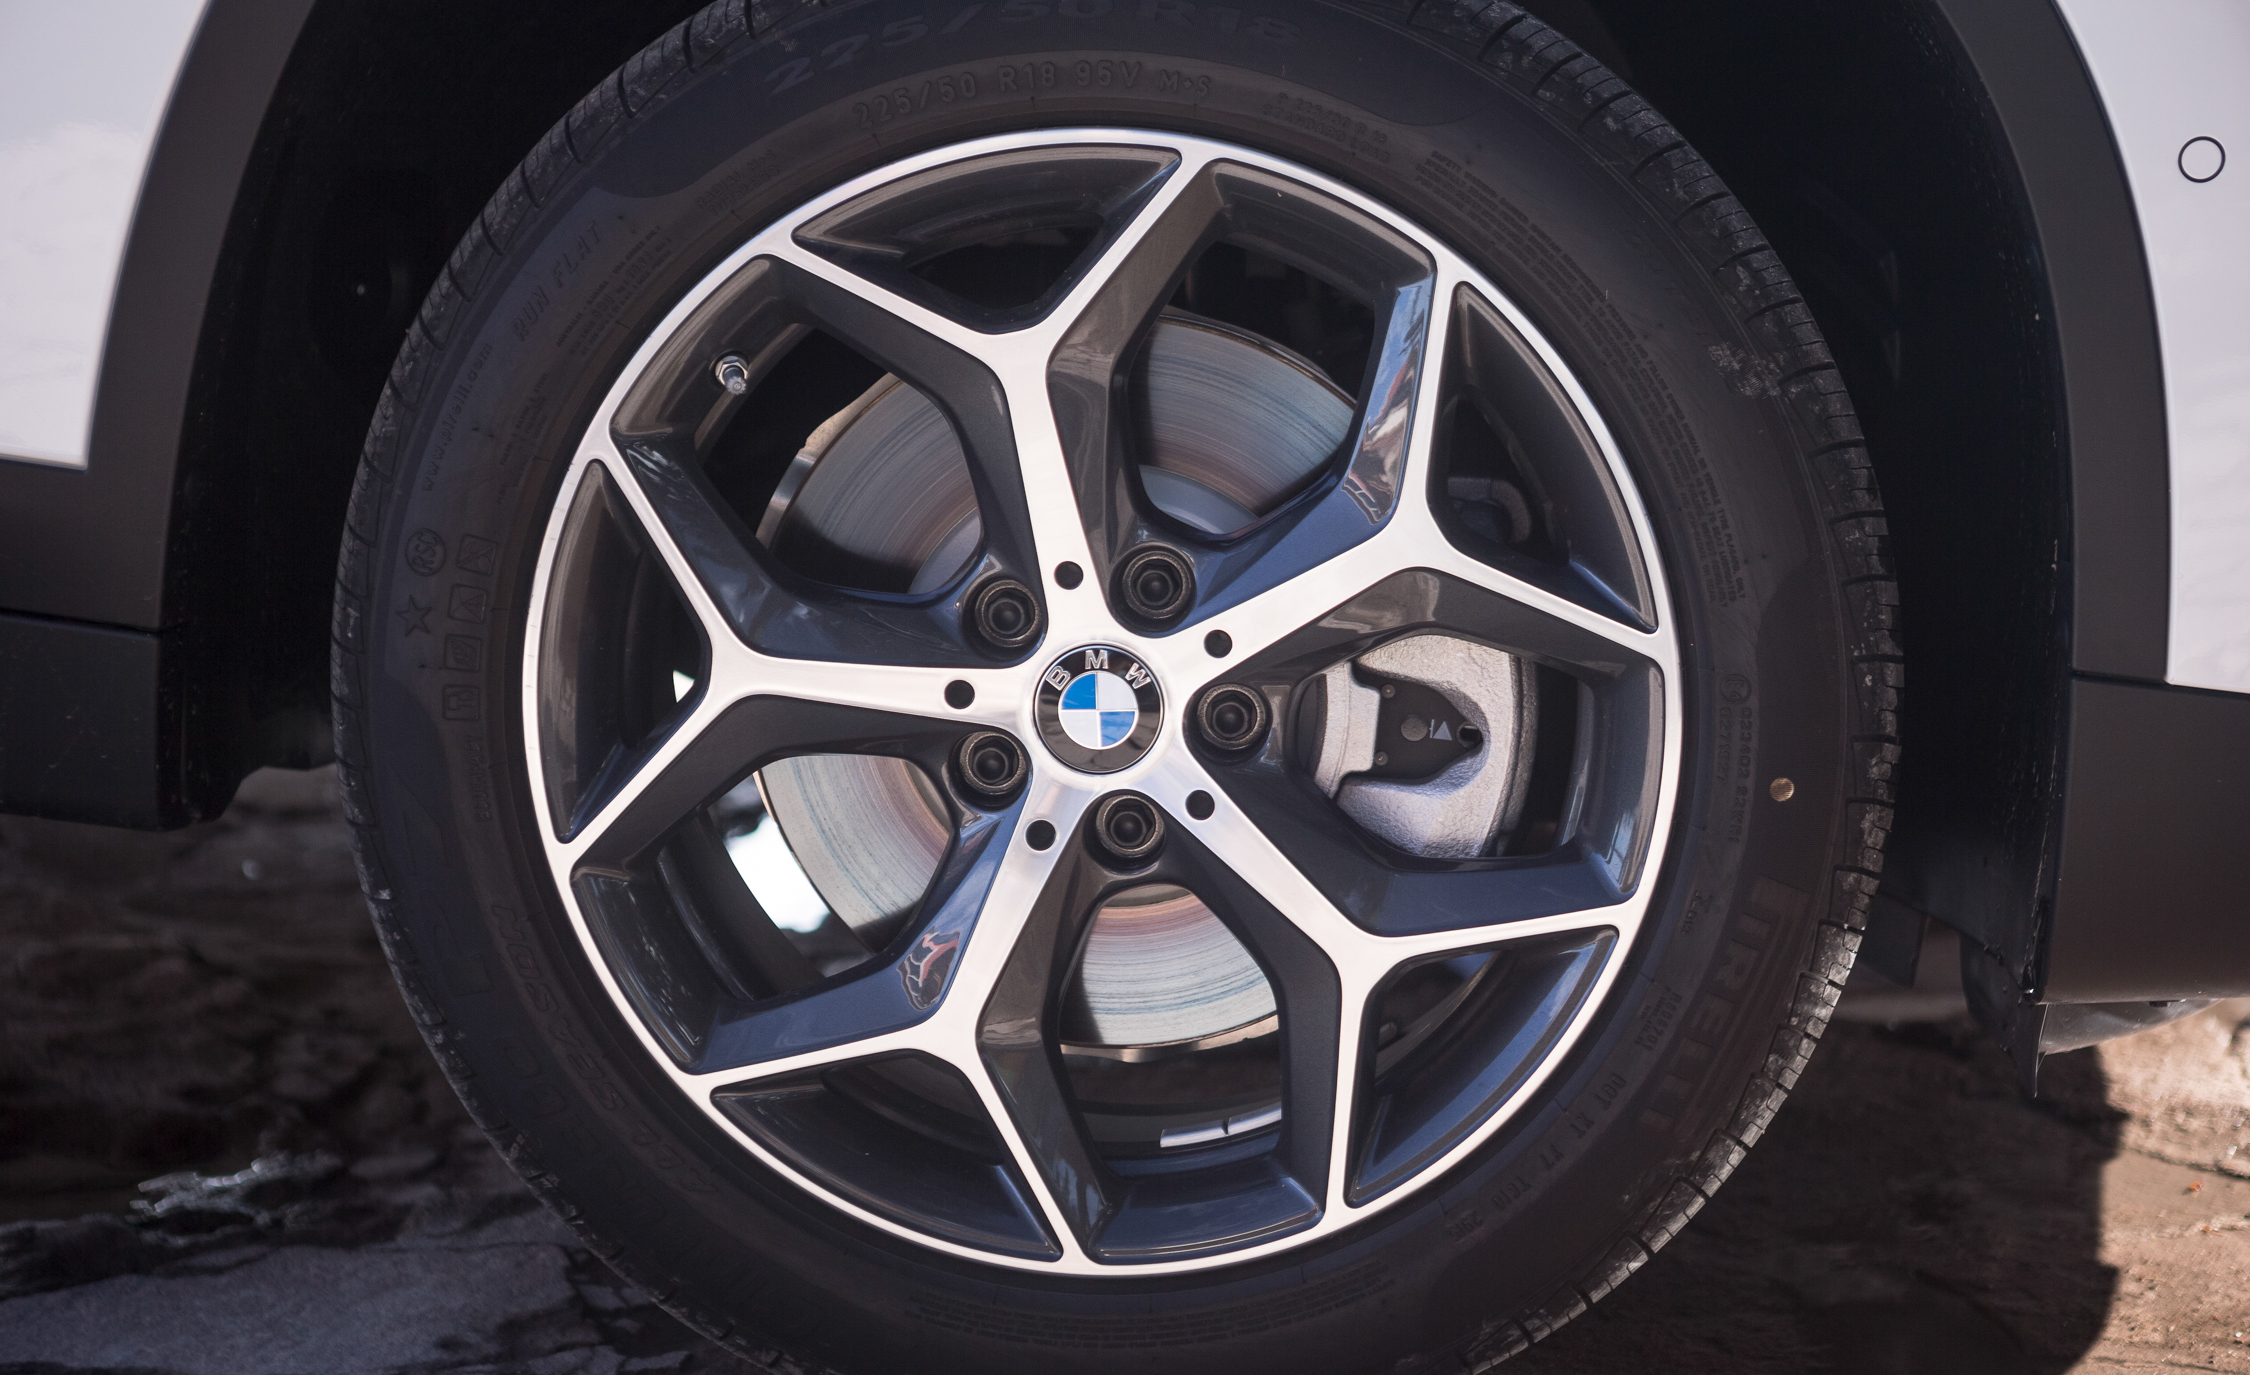 2016 BMW X1 Exterior White Metallic View Wheel Velg (Photo 12 of 36)